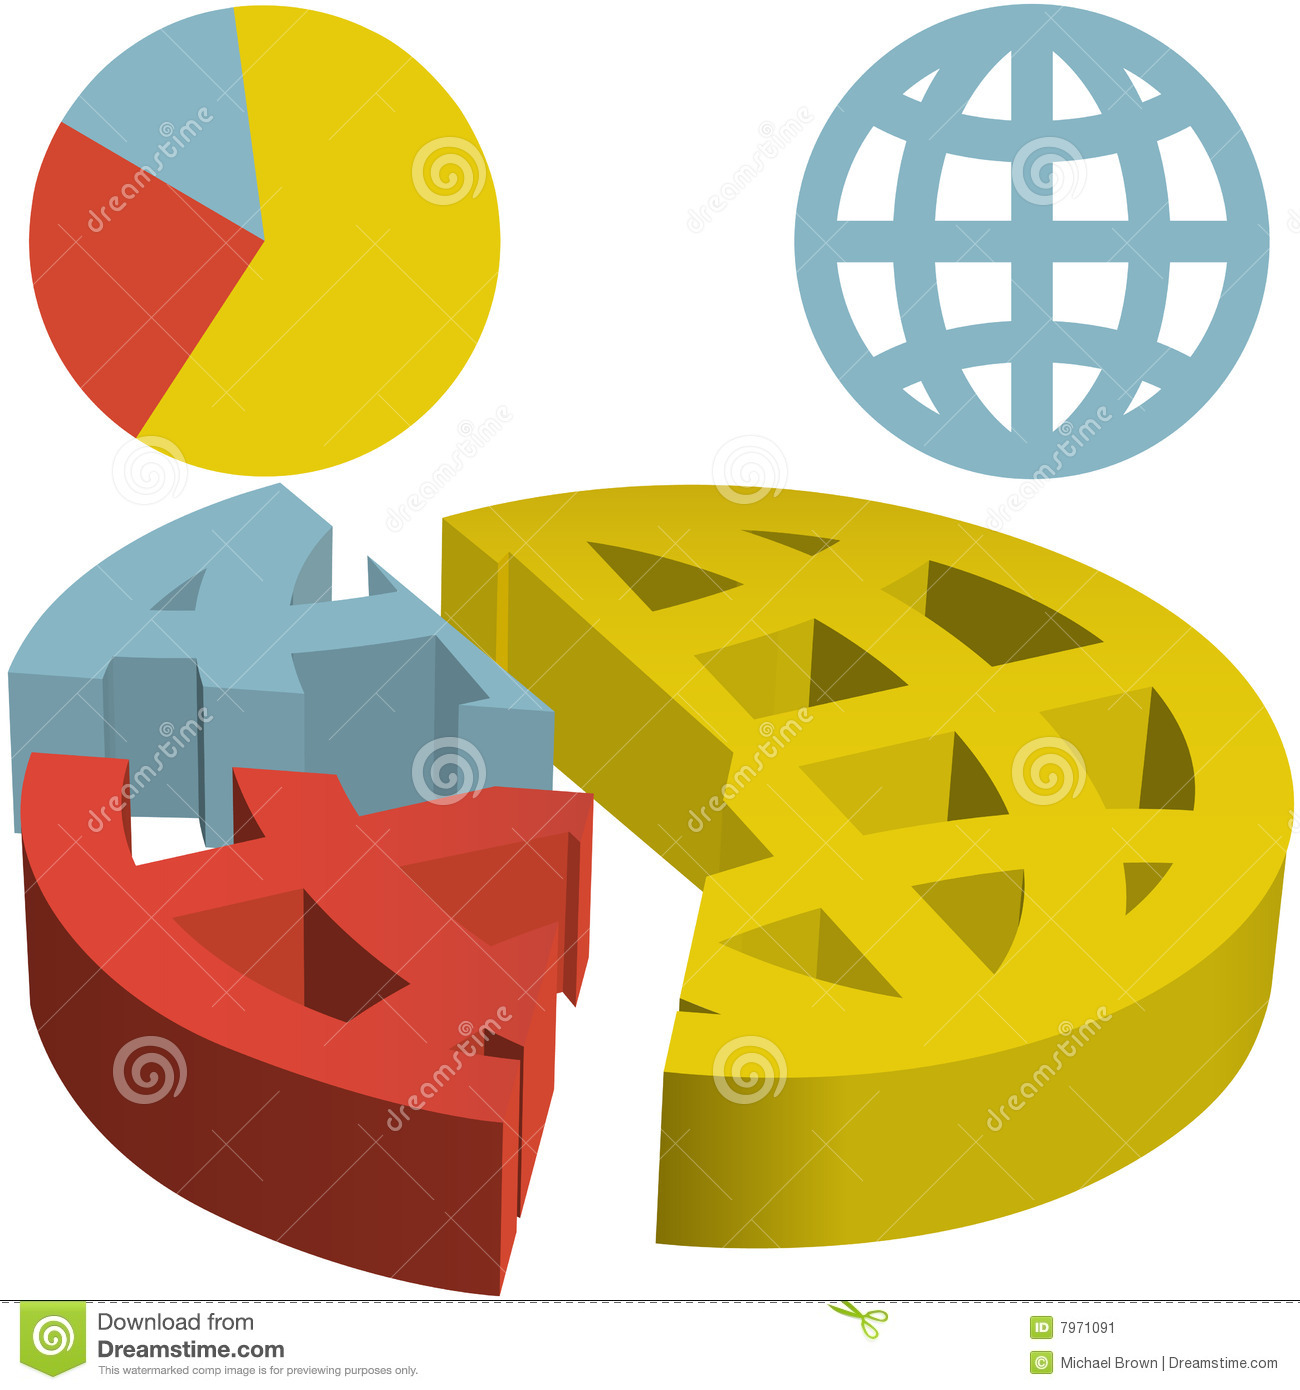 Global 3d Financial Pie Chart Of Globalization Dat Stock Vector